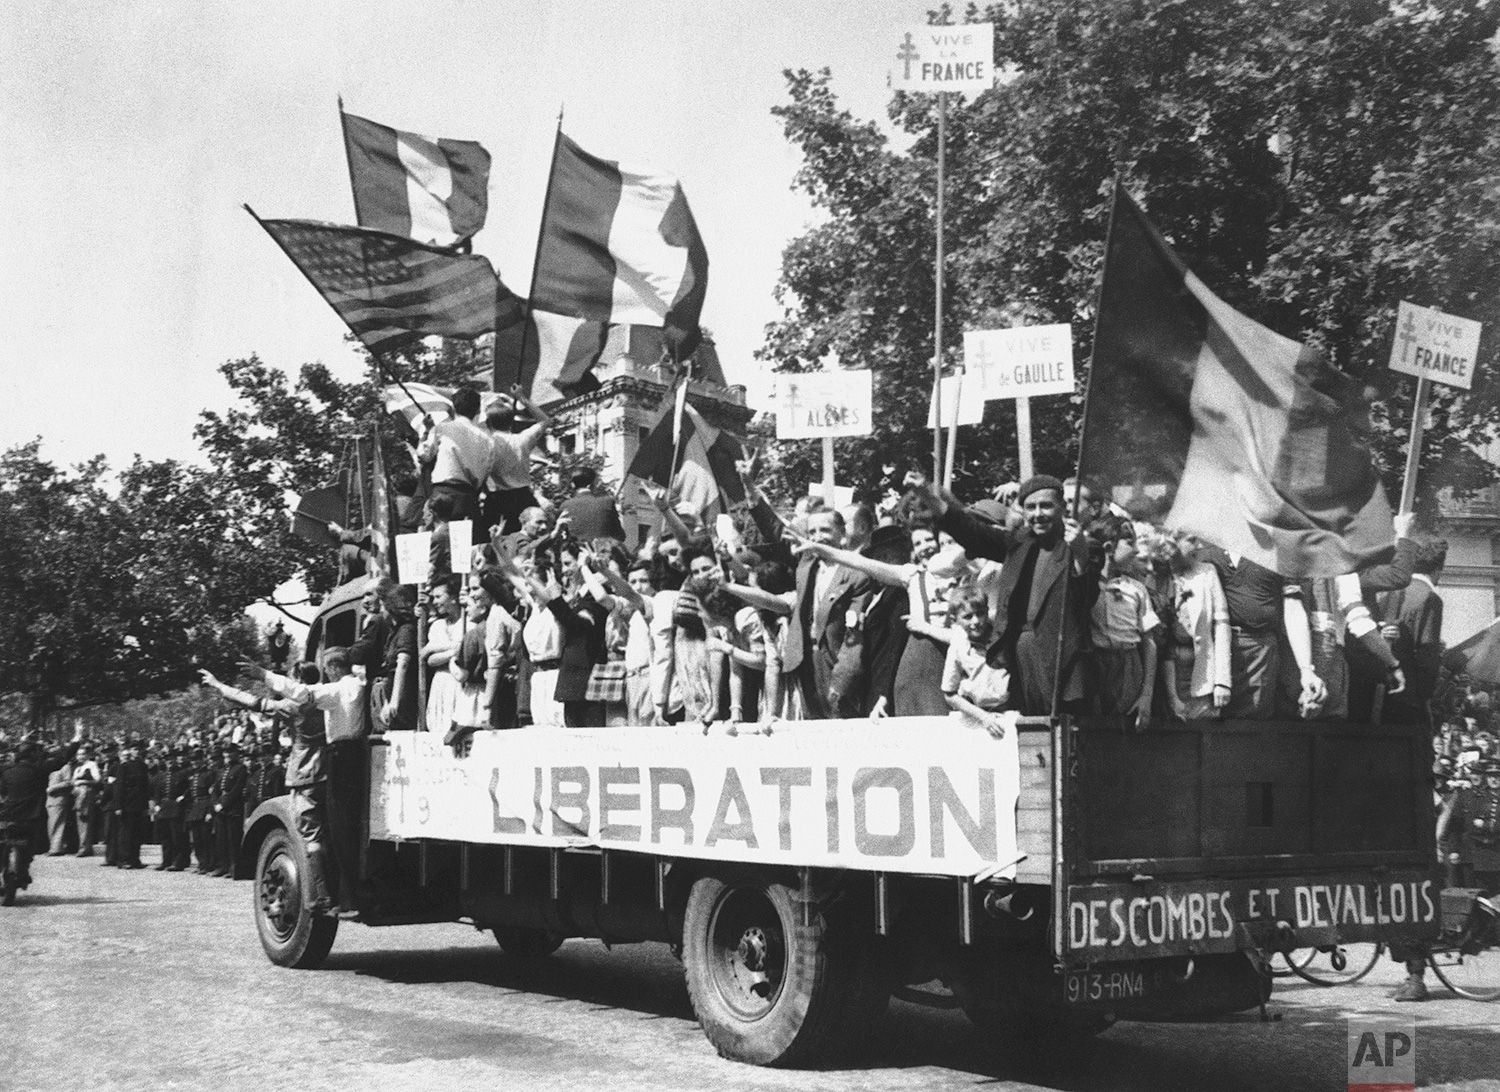 A truck load of Parisians waving flags and carrying Vive De Gaulle banners drives through the streets of a madly rejoicing Paris, on August 28, 1944. (AP Photo/Peter Carroll)